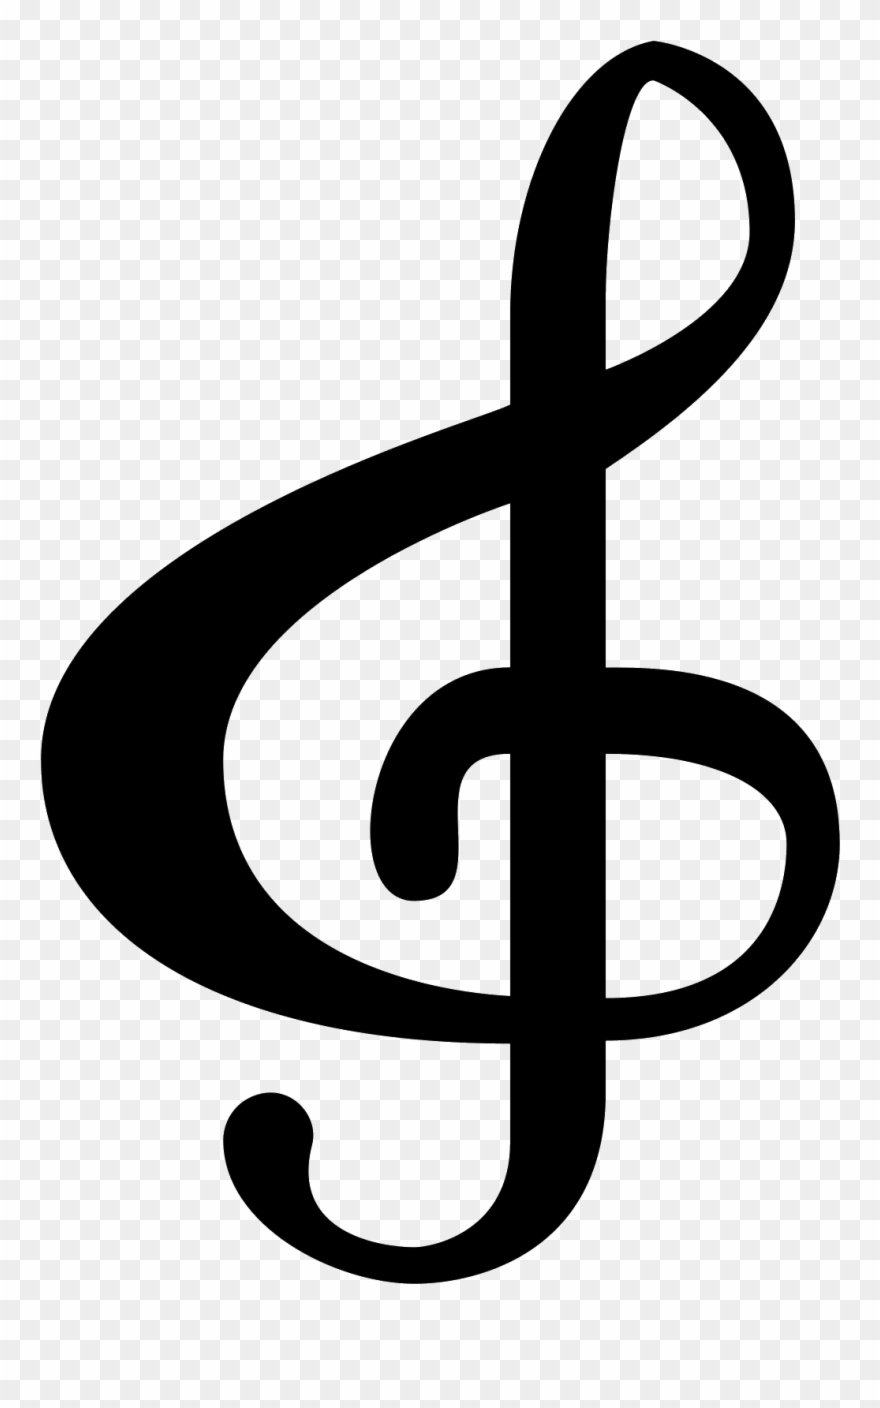 Clave sol clipart graphic black and white stock Image Treble Clef - Clave De Sol Png Clipart (#1339532) - PinClipart graphic black and white stock